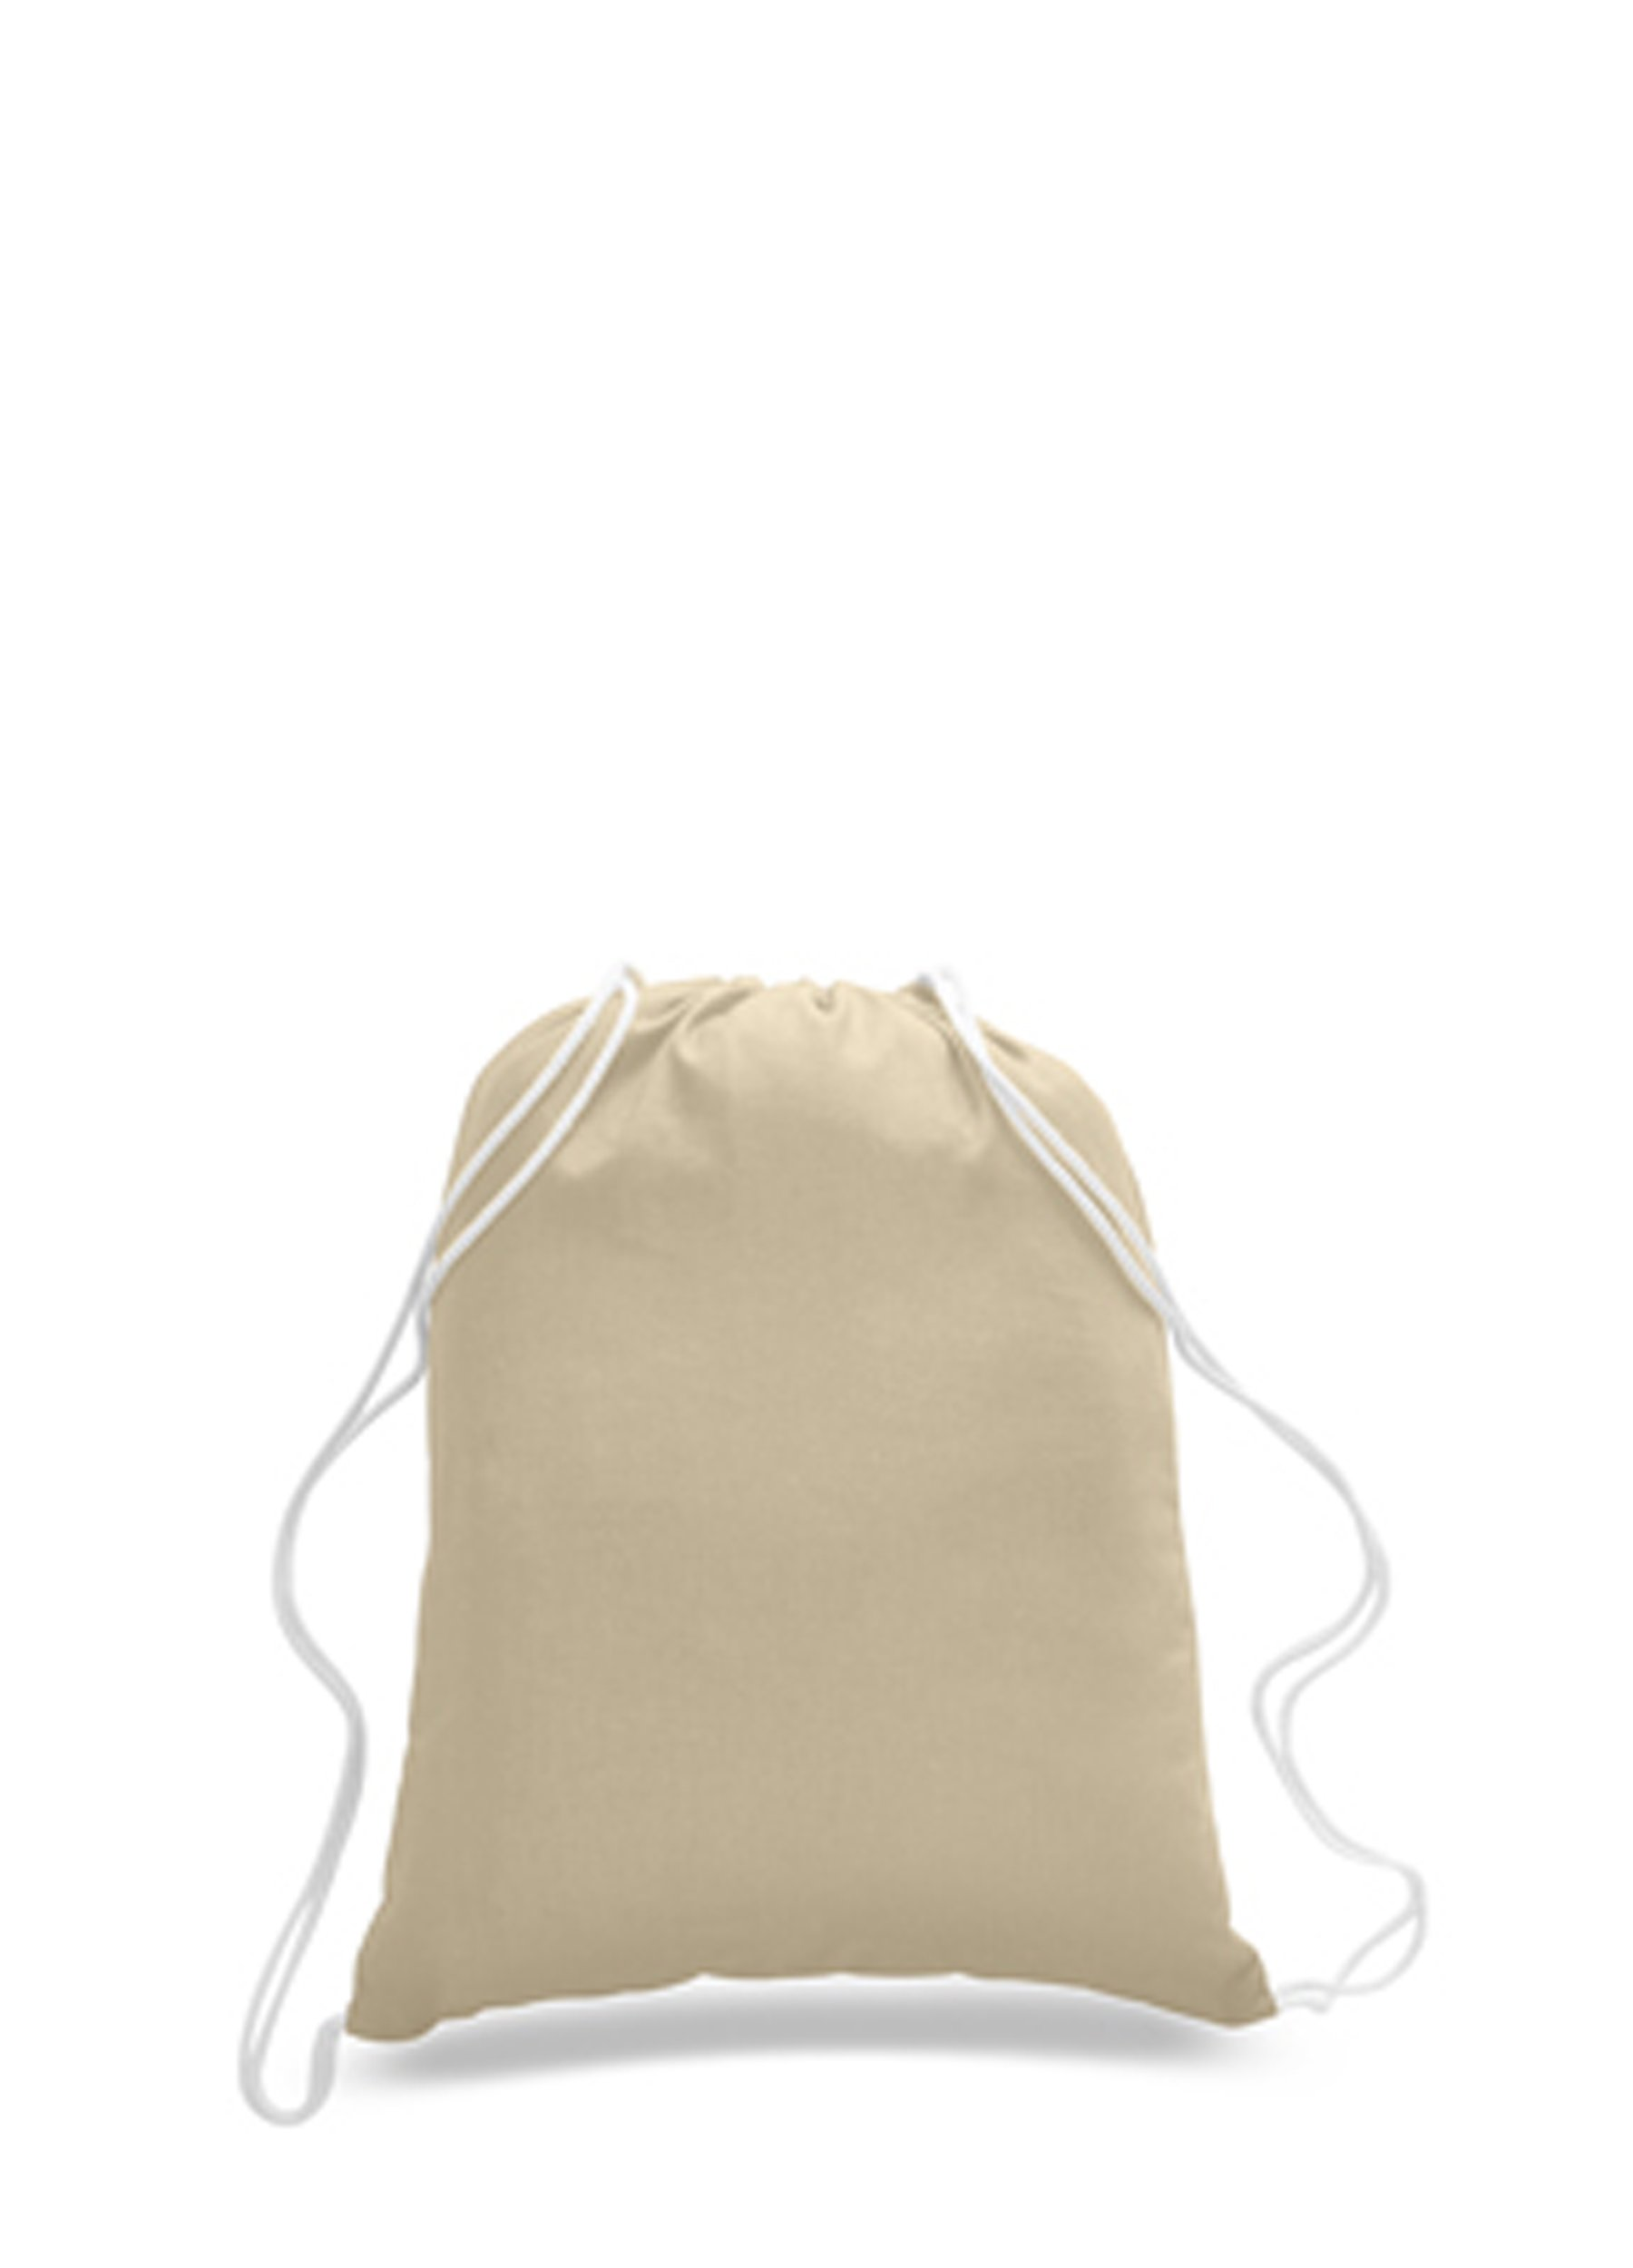 SET OF 12-100% Percent Cotton Gym Drawstring Backpacks Bags - Wholesale Promotional Bulk Durable Cheap Well Made Drawstring Bags Cinch Sacks (1 Dozen) (Large (17'' W x 20'' H), Natural)